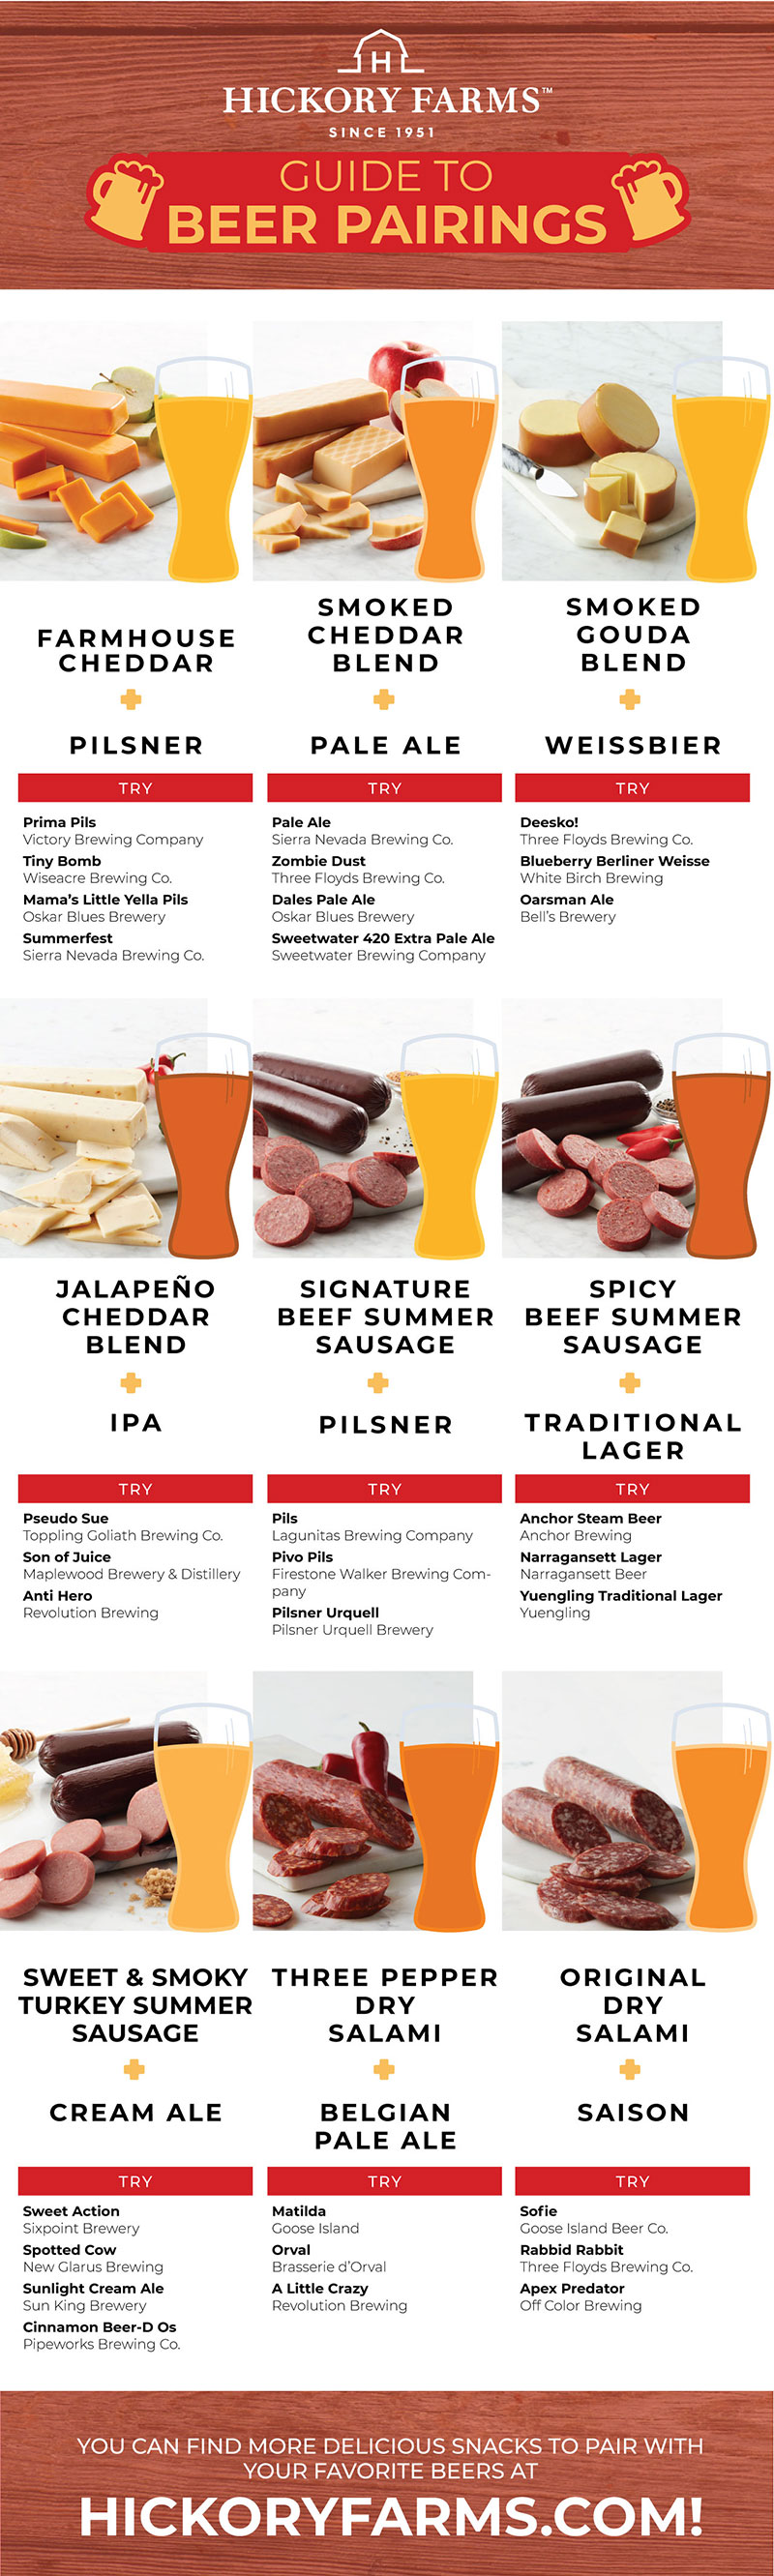 Guide to Beer Pairings